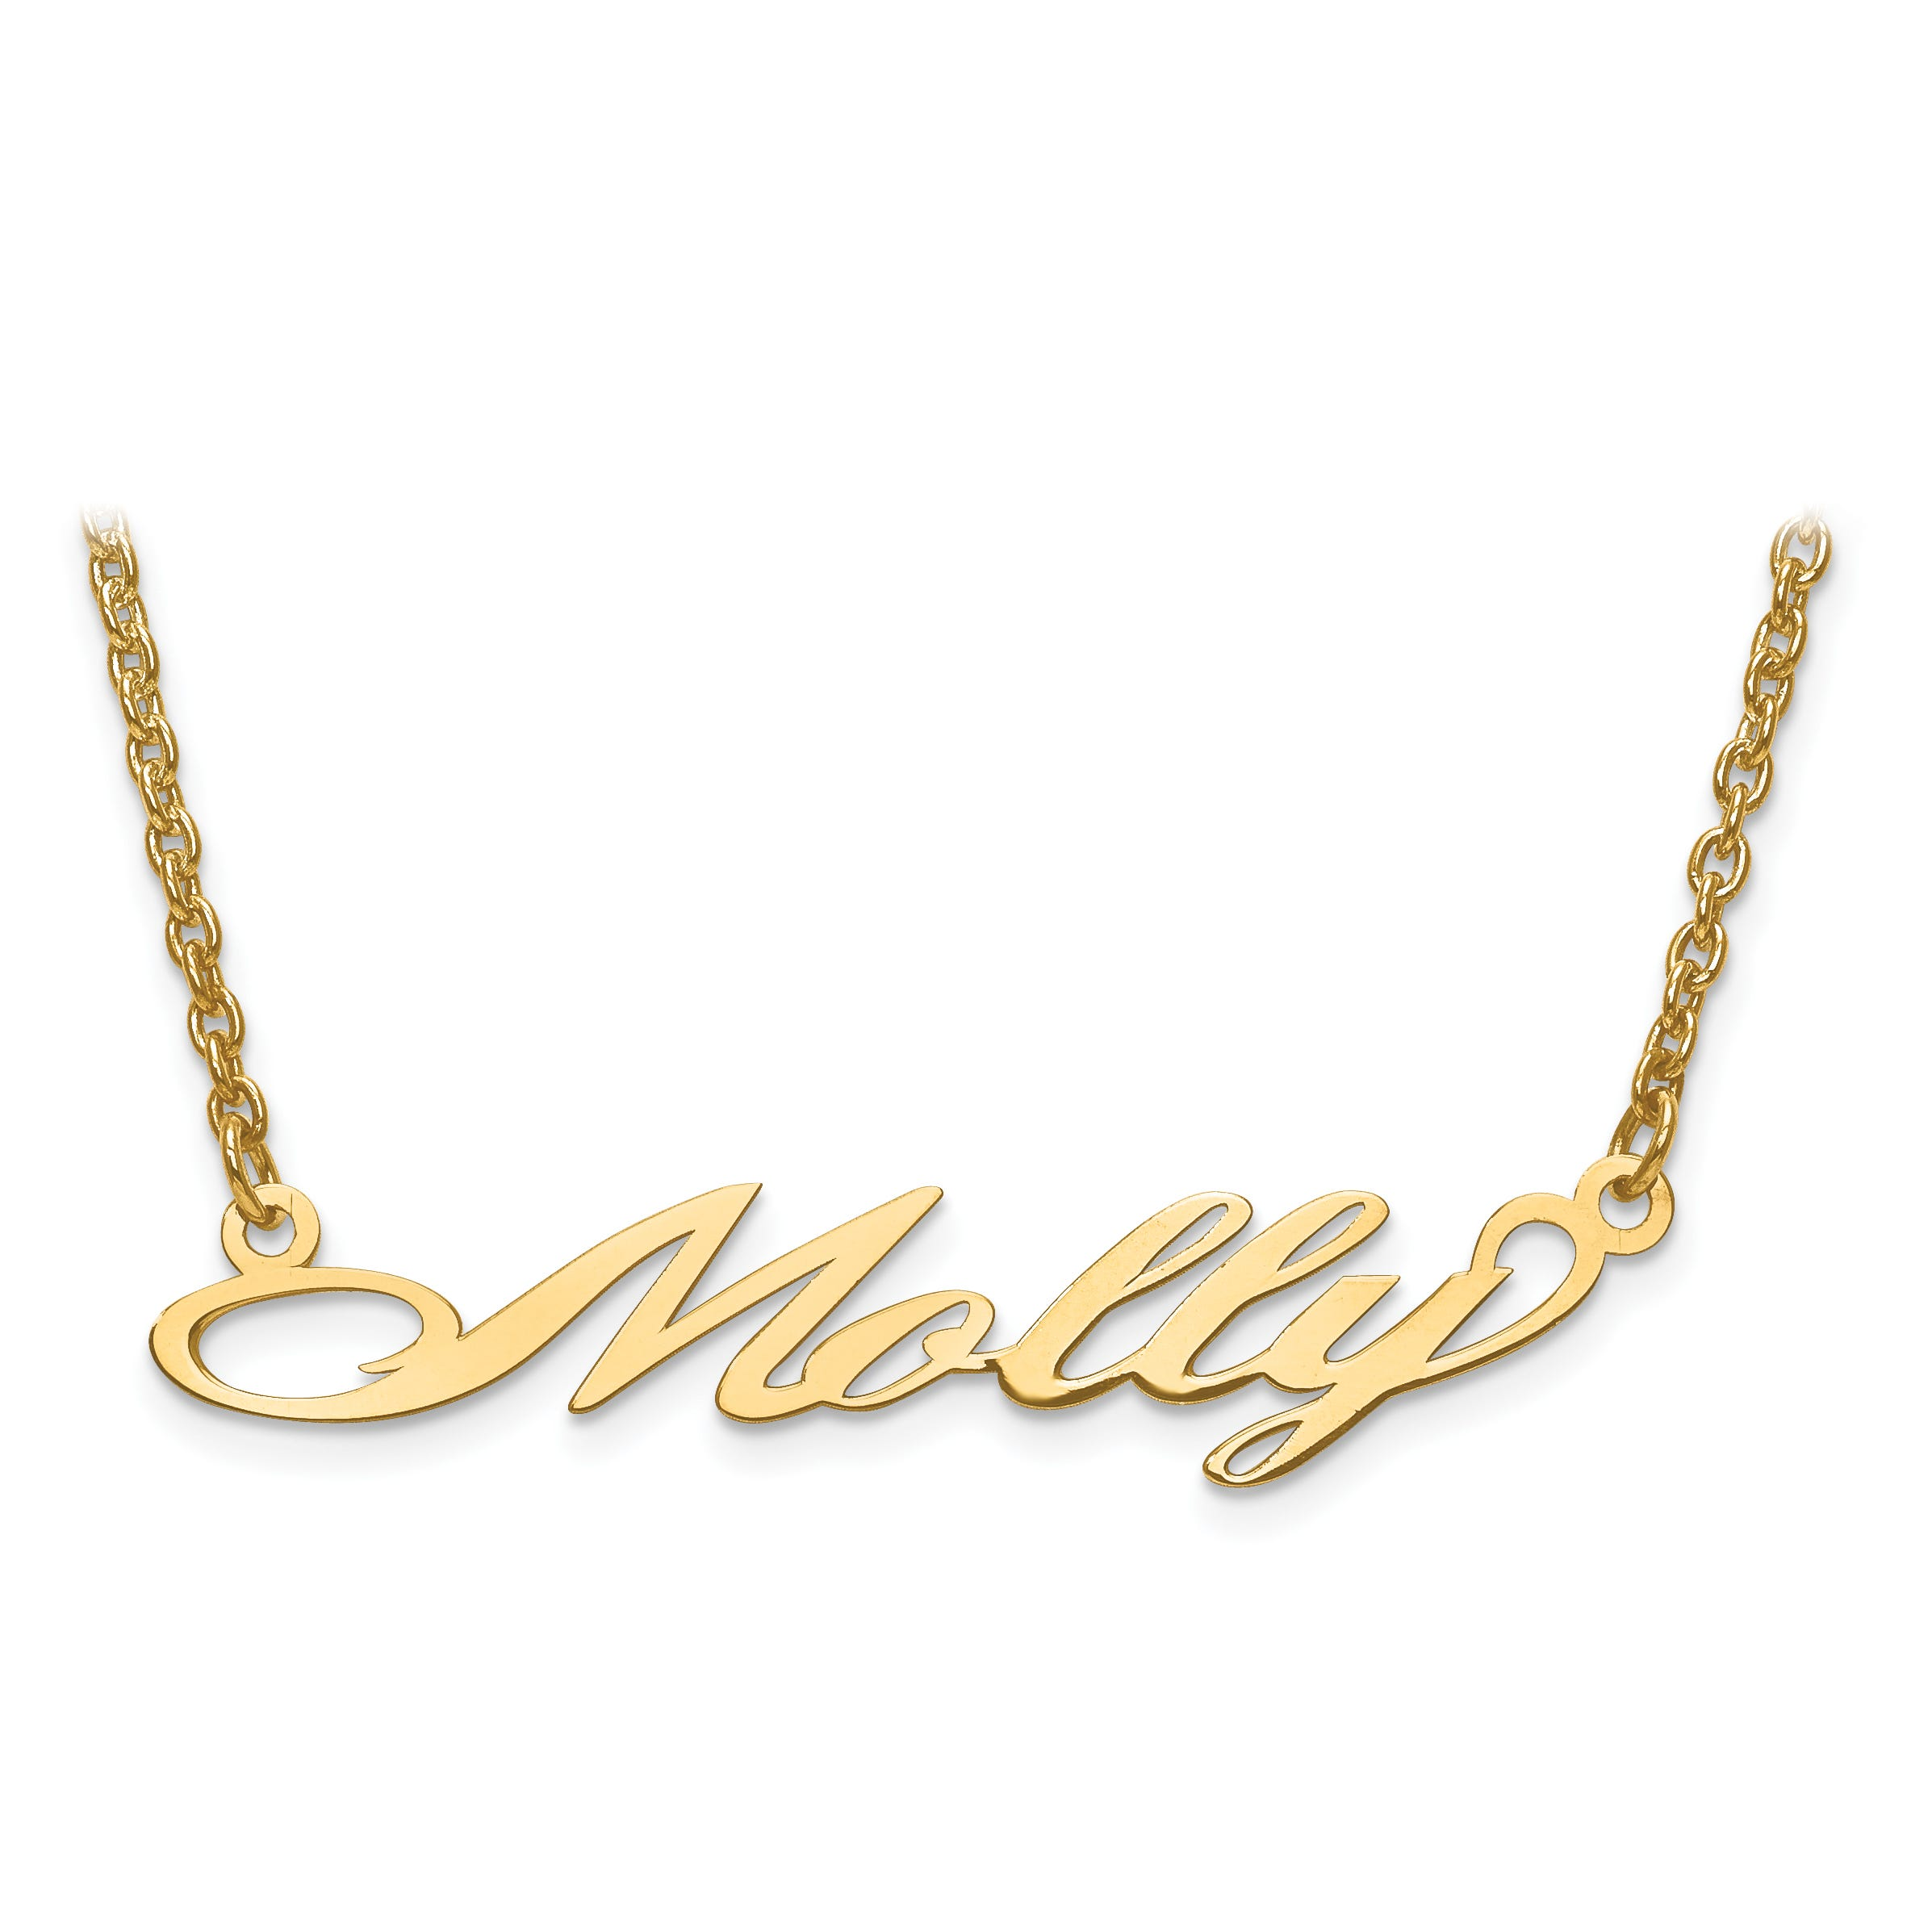 Laser Polished Nameplate Necklace in 10k Yellow Gold (up to 9 letters)